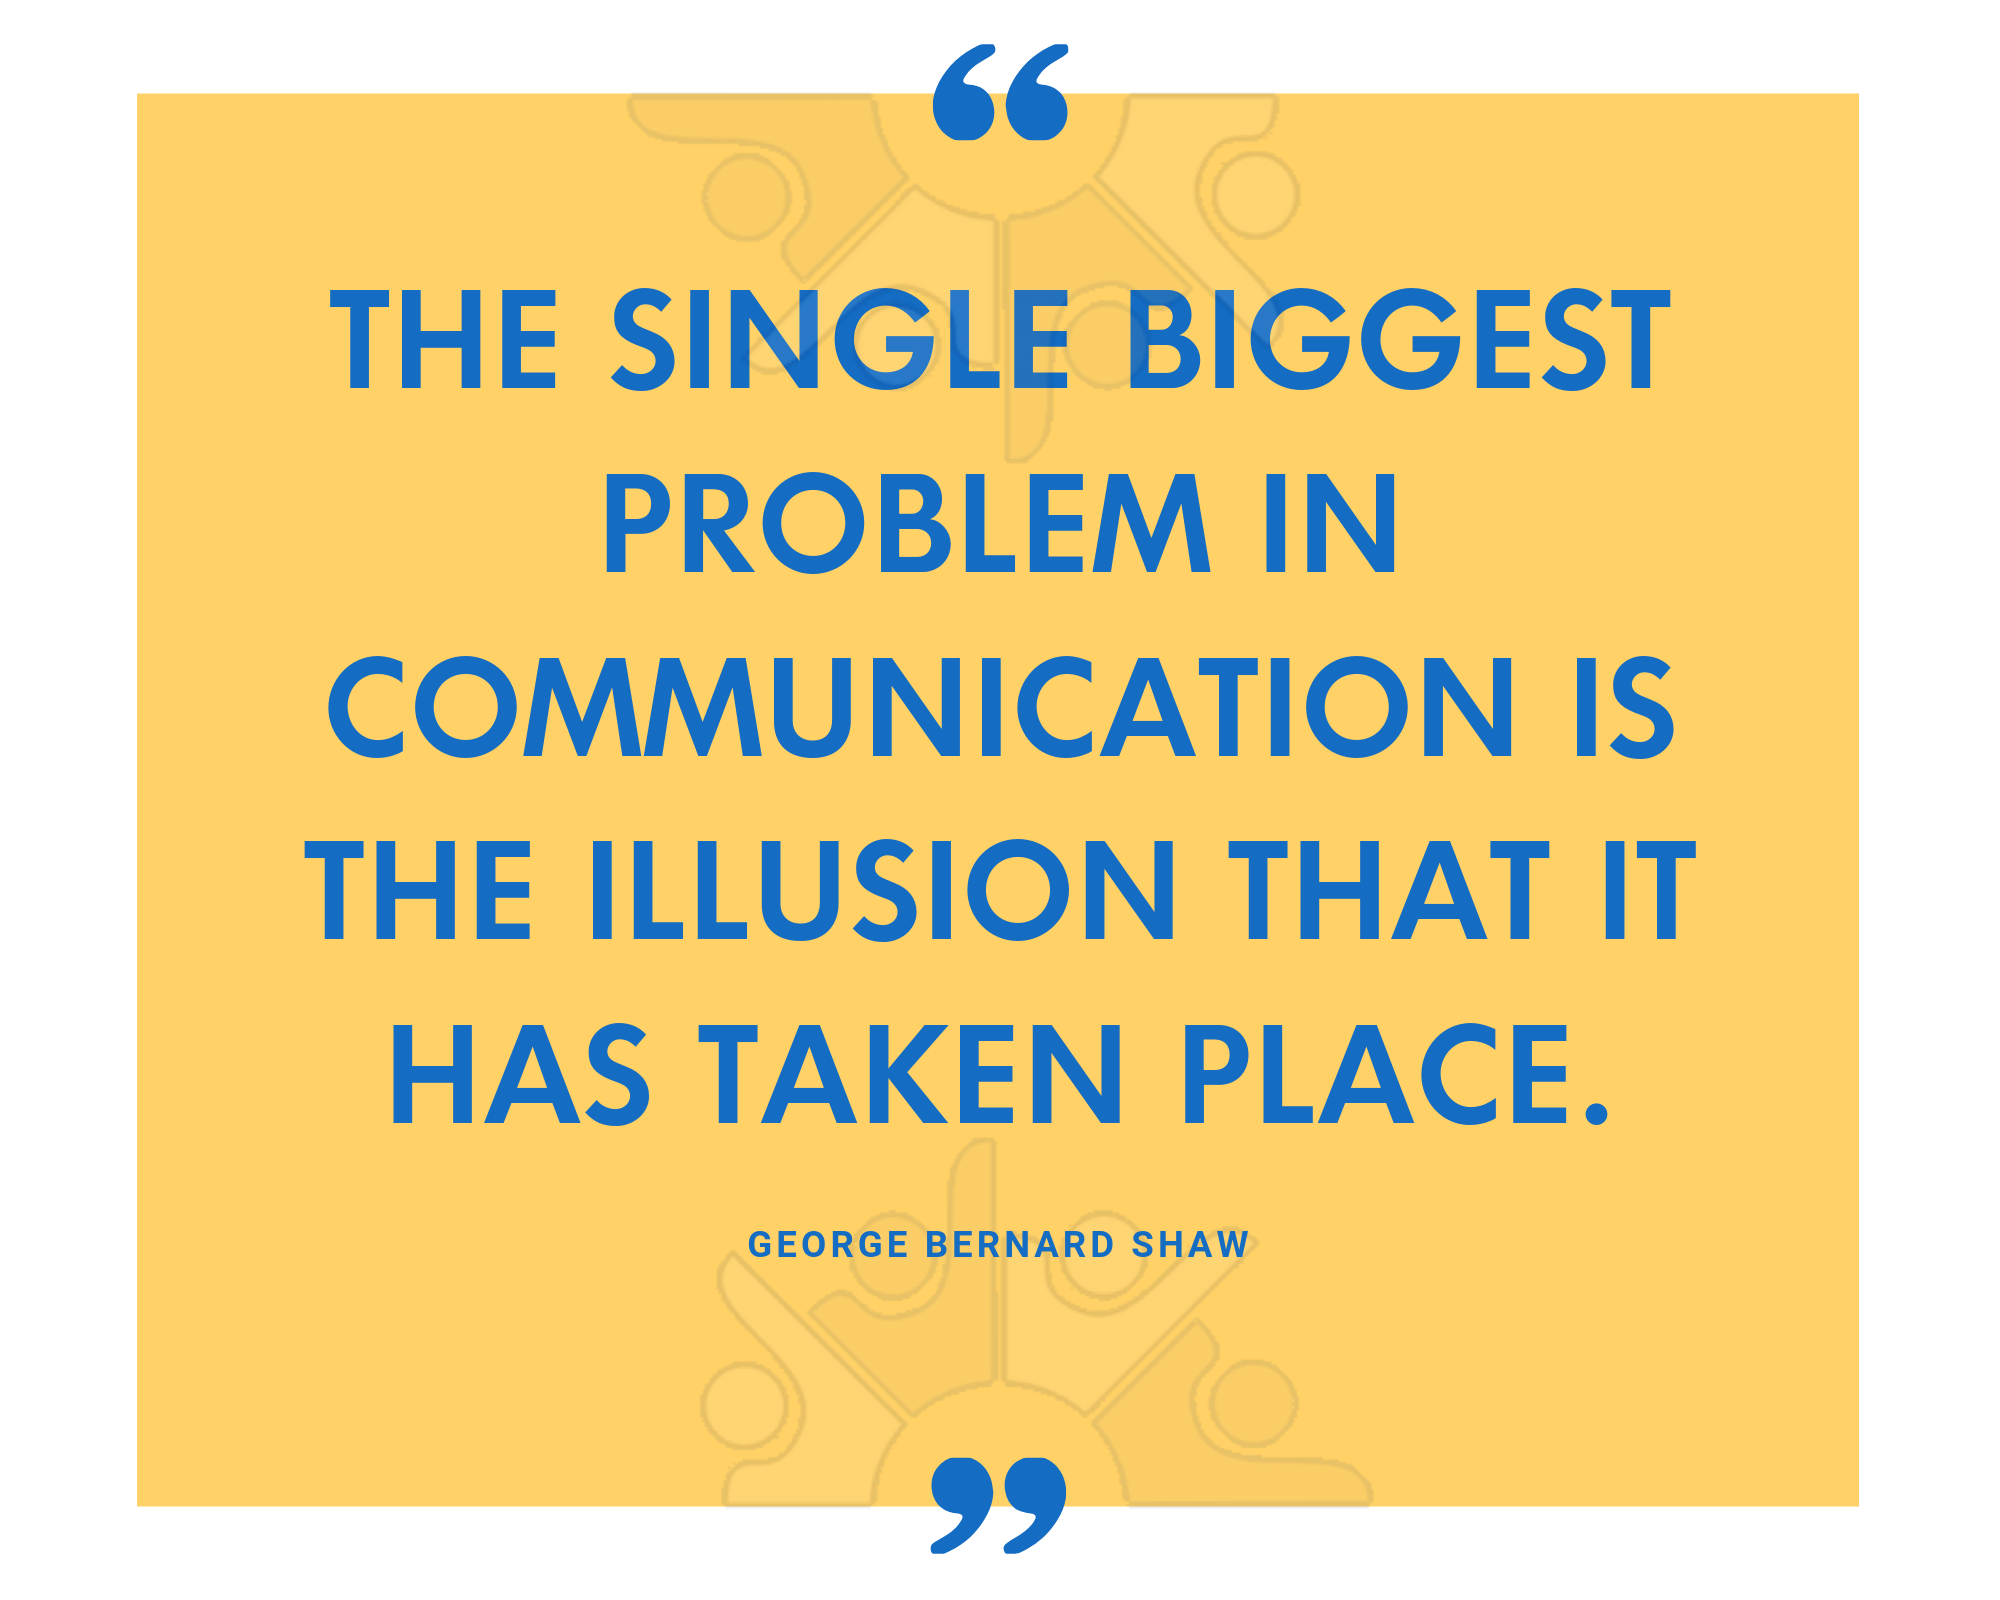 The single biggest problem in communication is the illusion that it has taken place.